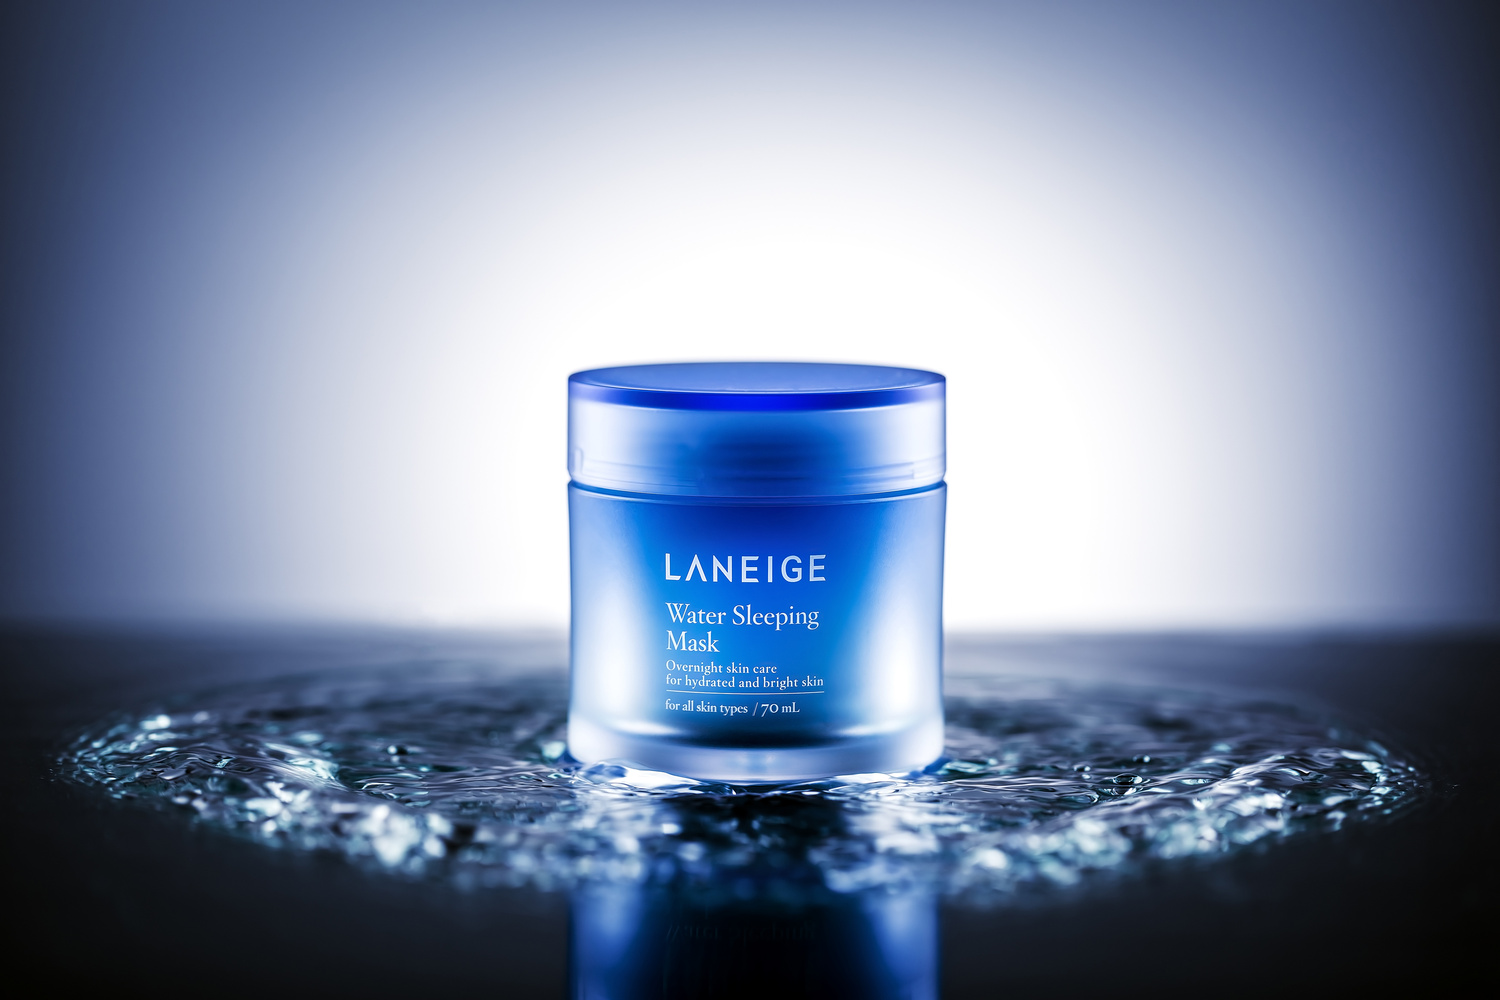 Laneige by Mirza Hasanefendic